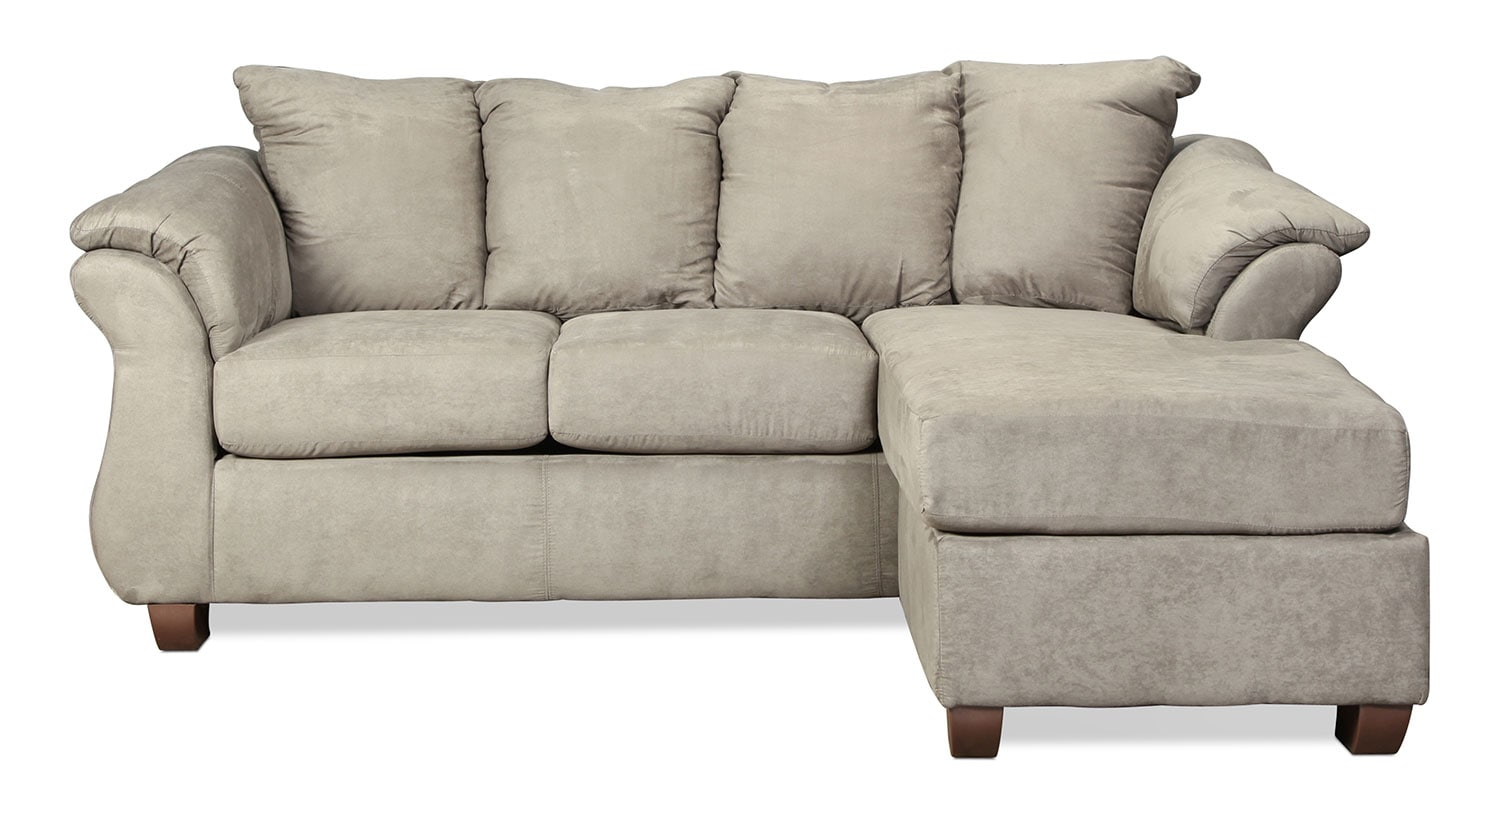 Manhattan Reversible Chaise Sofa - Grey